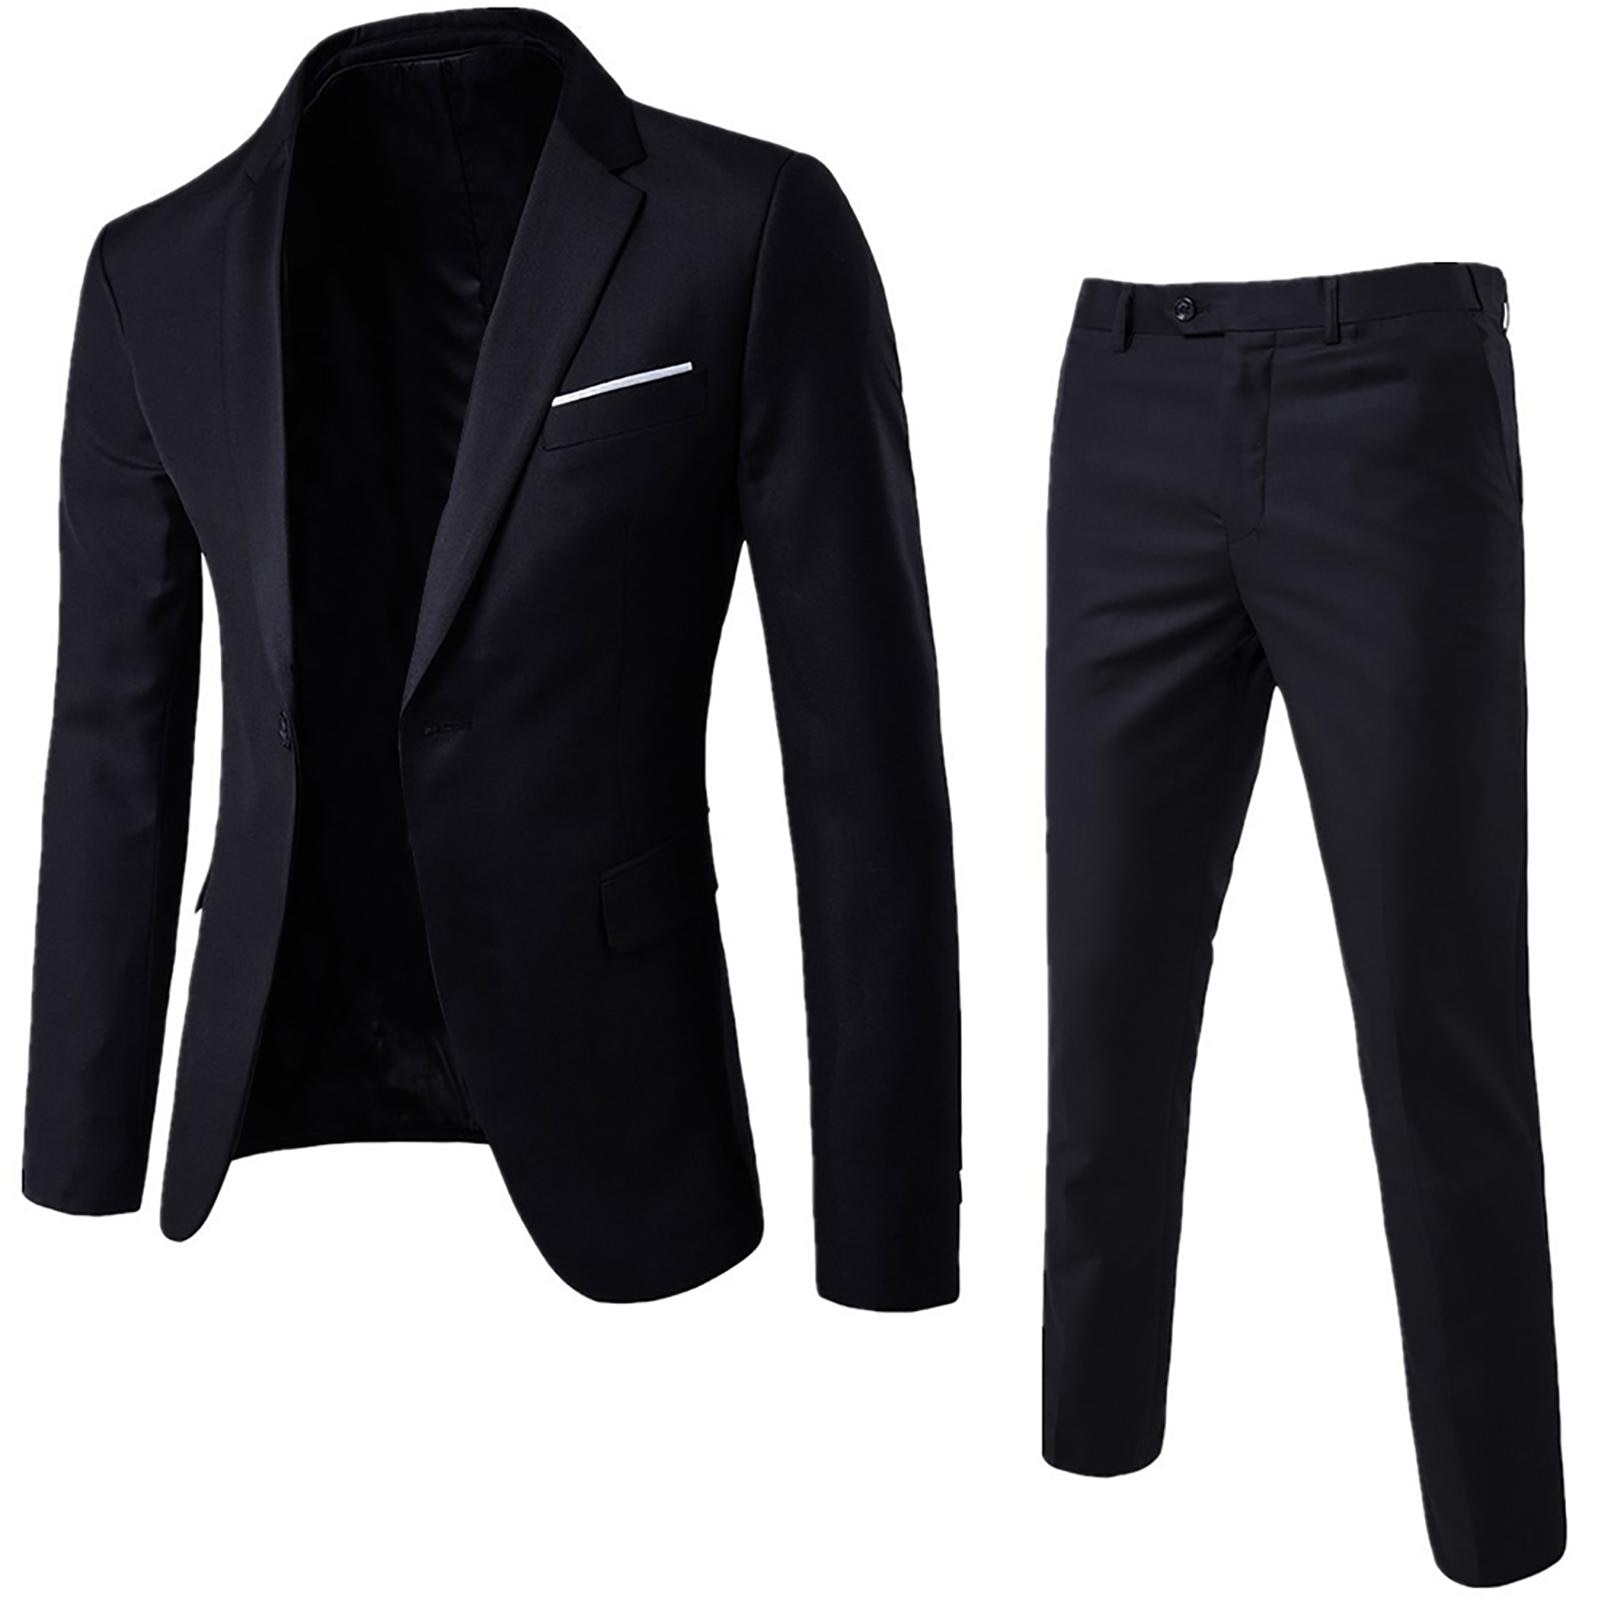 Men's Fashion Slim Suits Business Casual Clothing Groomsman 2 piece Suit Blazers Jacket Pants Trouse